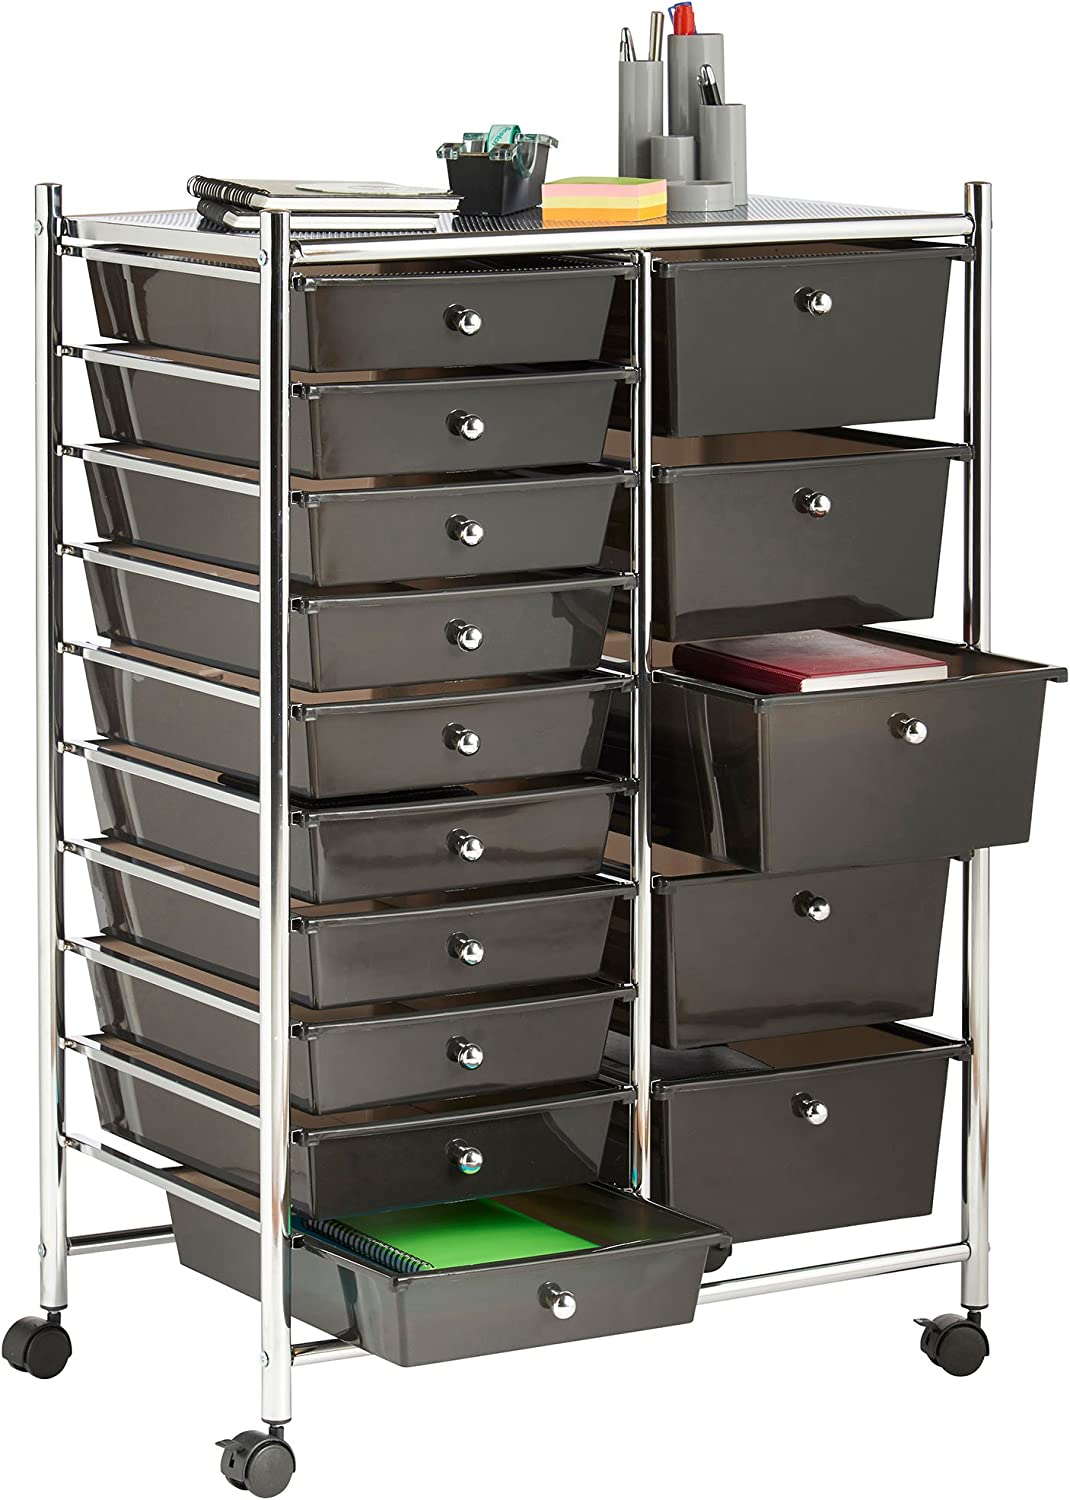 Vonhaus 15 Drawer Plastic Storage Trolley With Wheels Multipurpose Rolling Cart Drawers Unit For Home Office Stationery Organisation Crafts Salon Make Up Hairdressing Beauty Mobile Design With 10 Tier Shelving Black Amazon Co Uk Kitchen